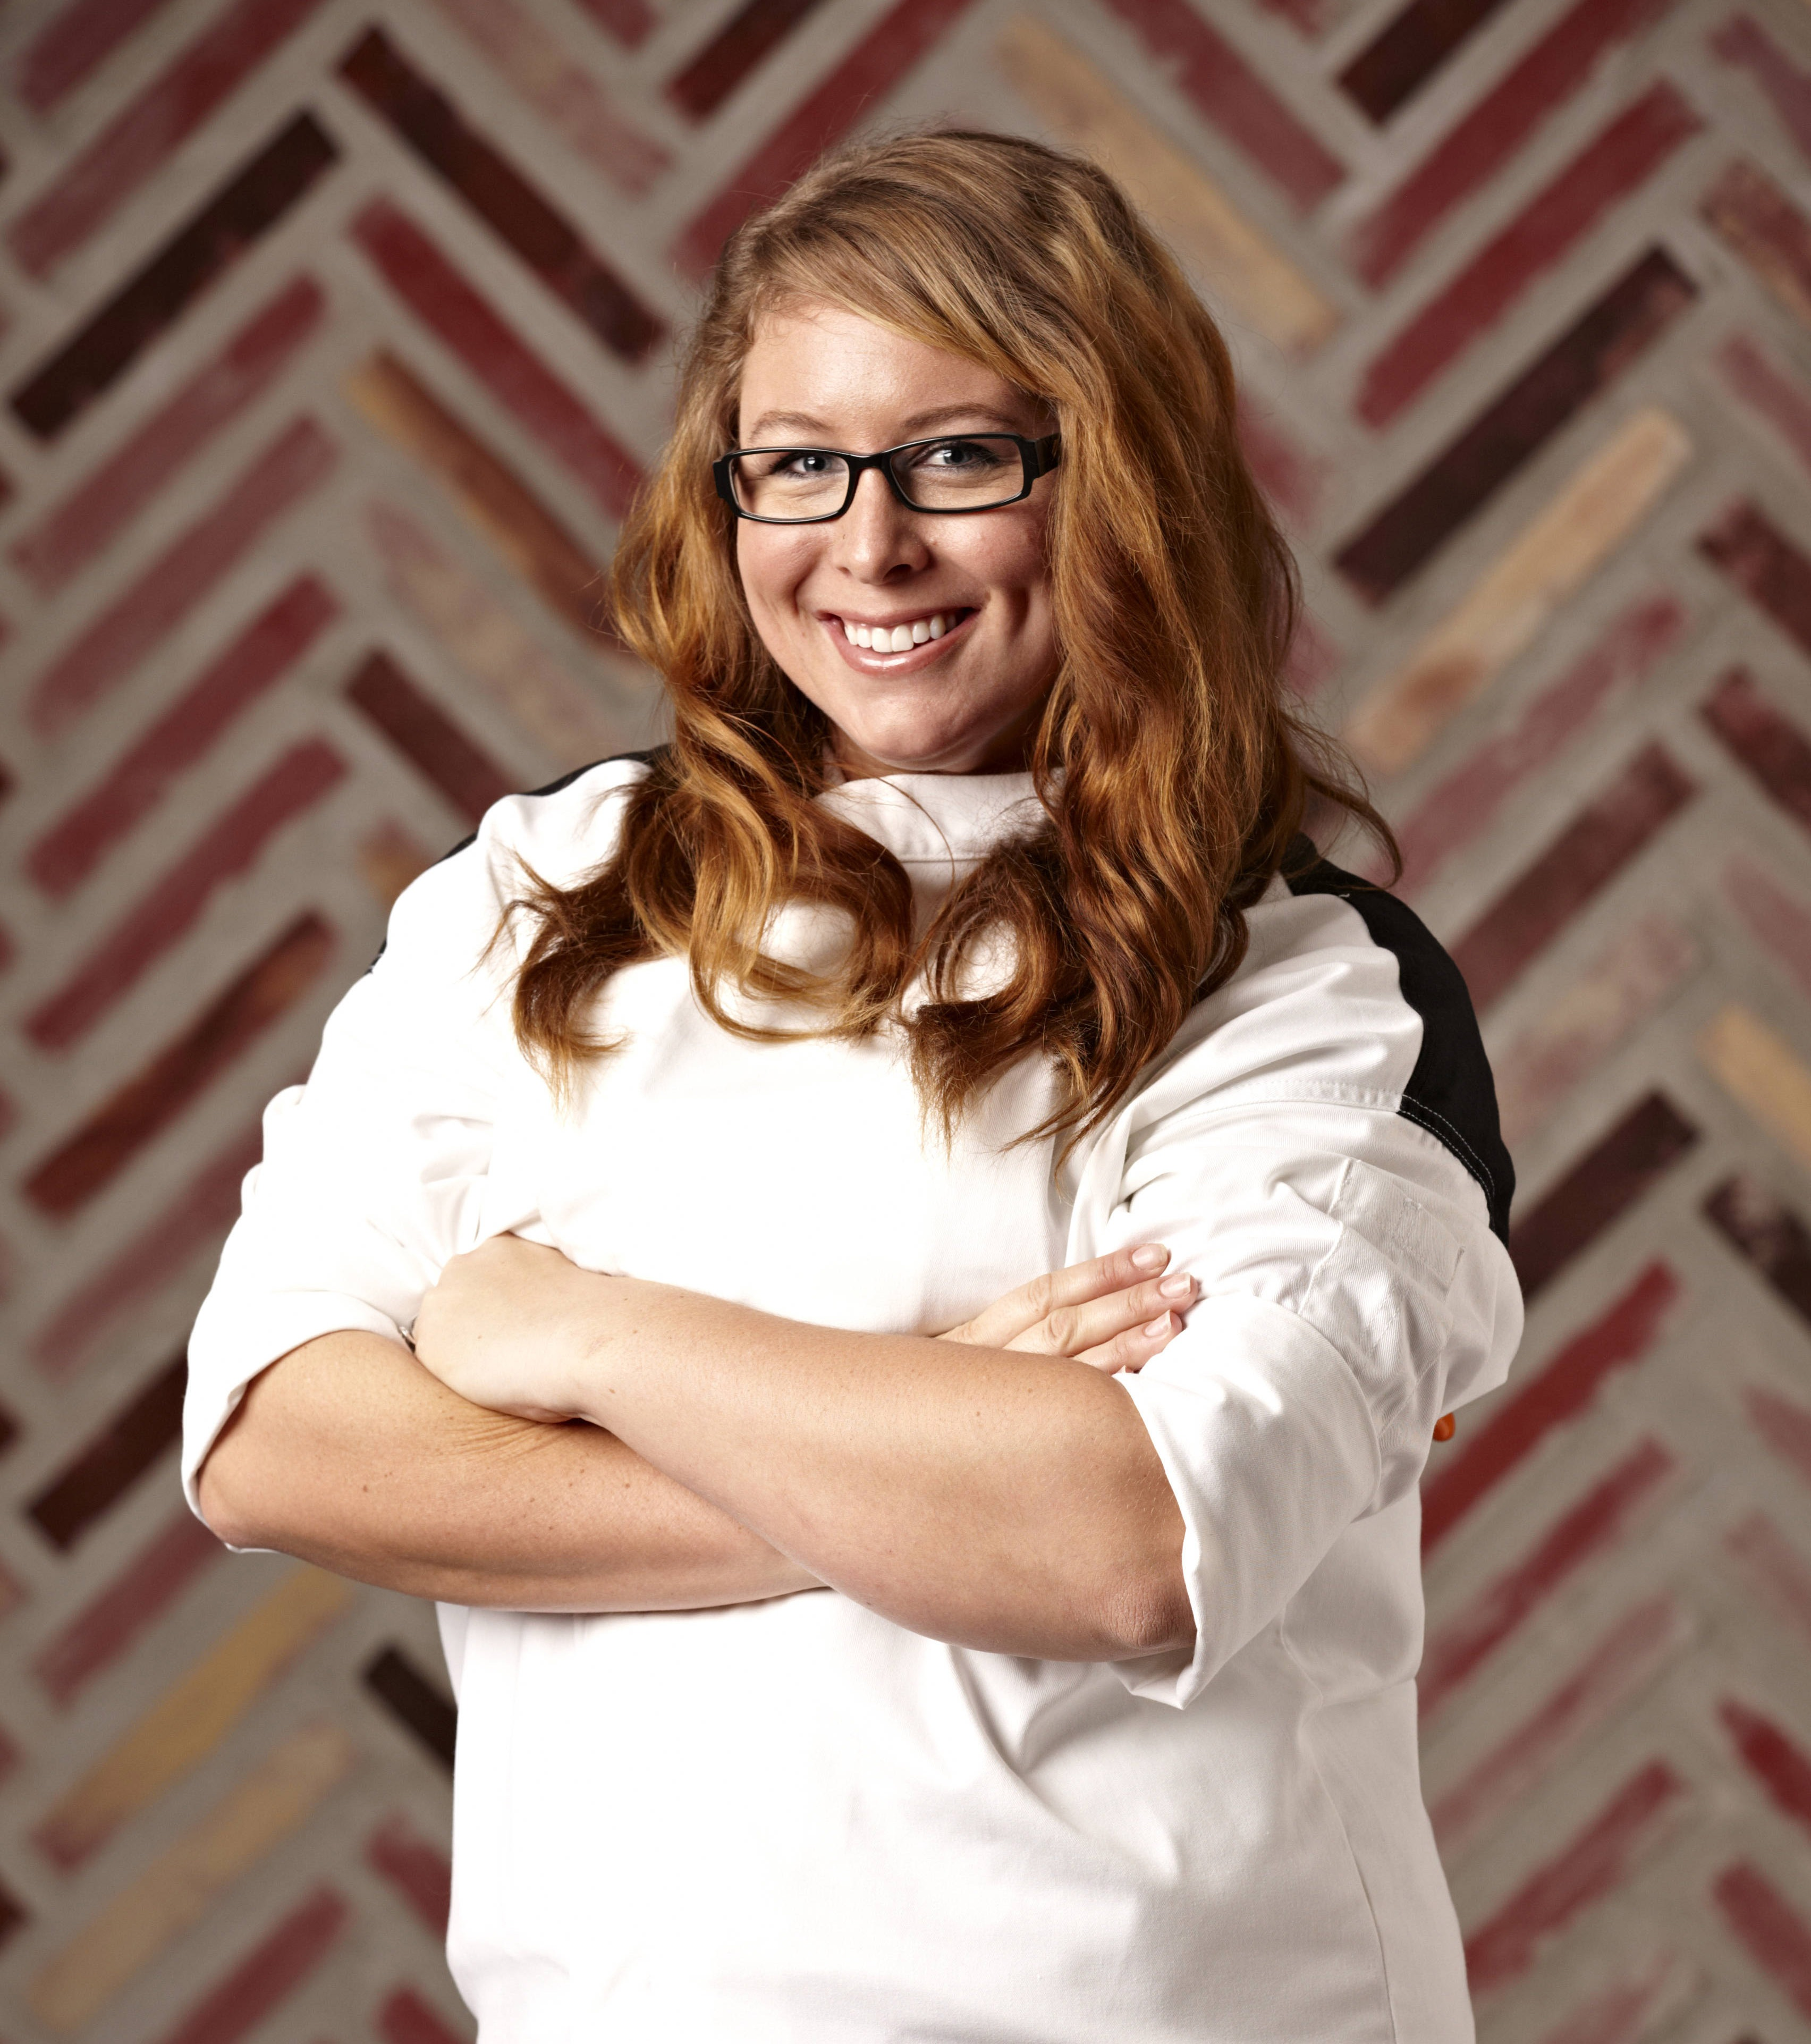 grad heats up hell s kitchen viewpoints online